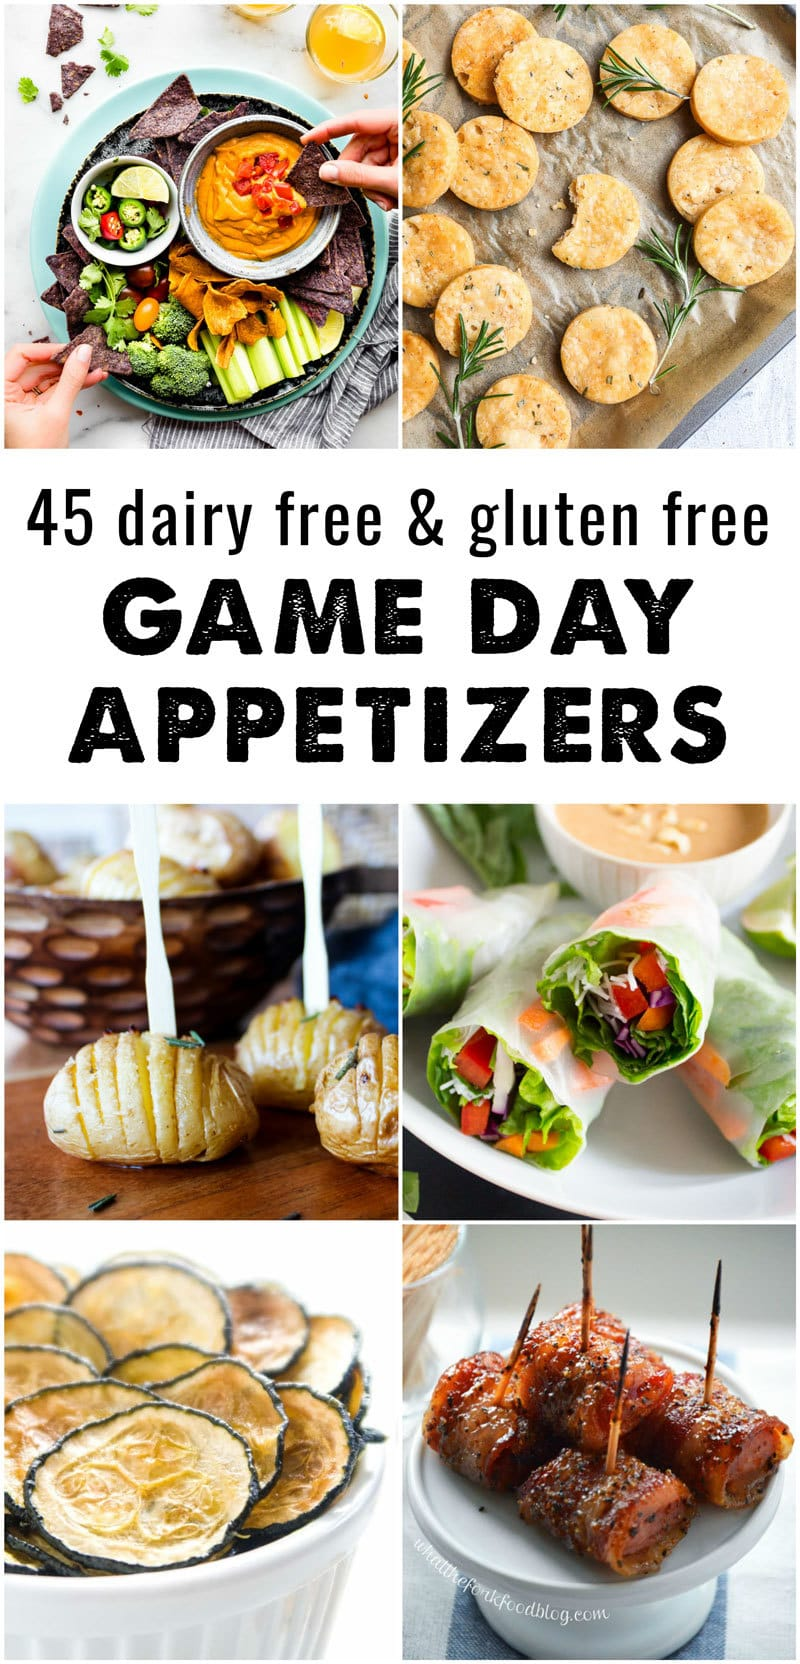 Gearing up for your next sports party? We've got you covered for allergy friendly party foods with this roundup of 45 dairy free and gluten free game day recipes! Every recipe in this roundup is dairy free and gluten free, with plenty of vegan, paleo, nut-free, and low carb recipe options to choose from - @TheFitCookie #superbowl #snacks #appetizers